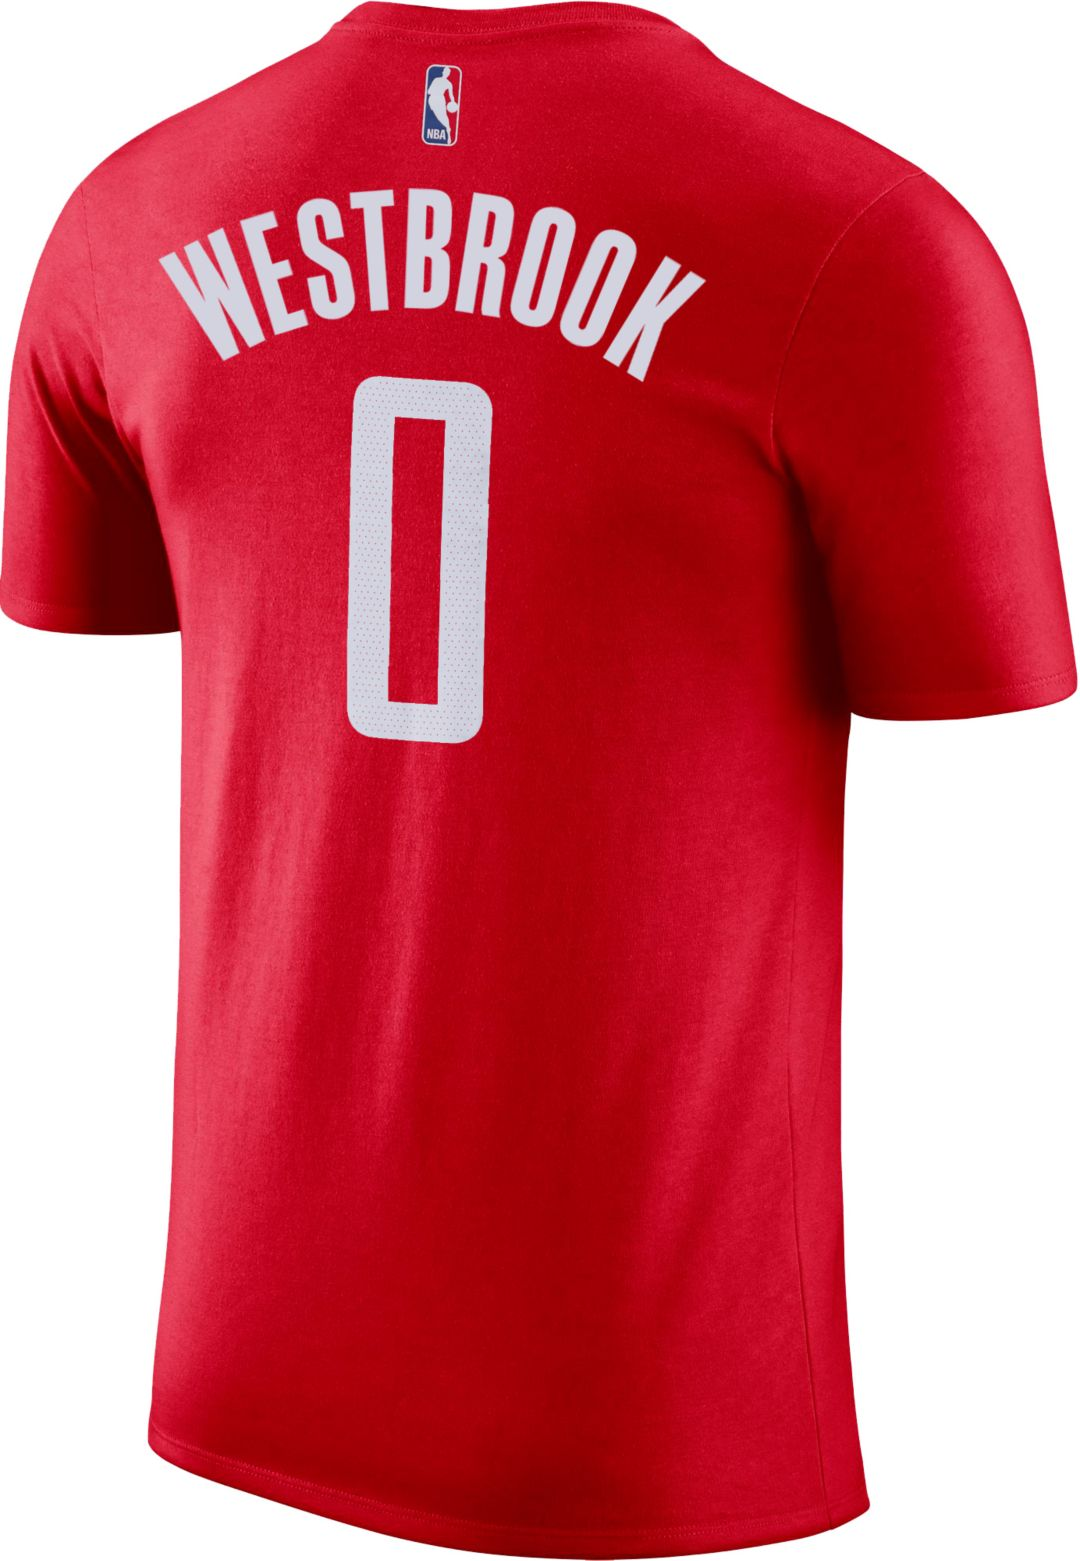 sale retailer 97e61 50a5e Nike Youth Houston Rockets Russell Westbrook #0 Dri-FIT Red T-Shirt